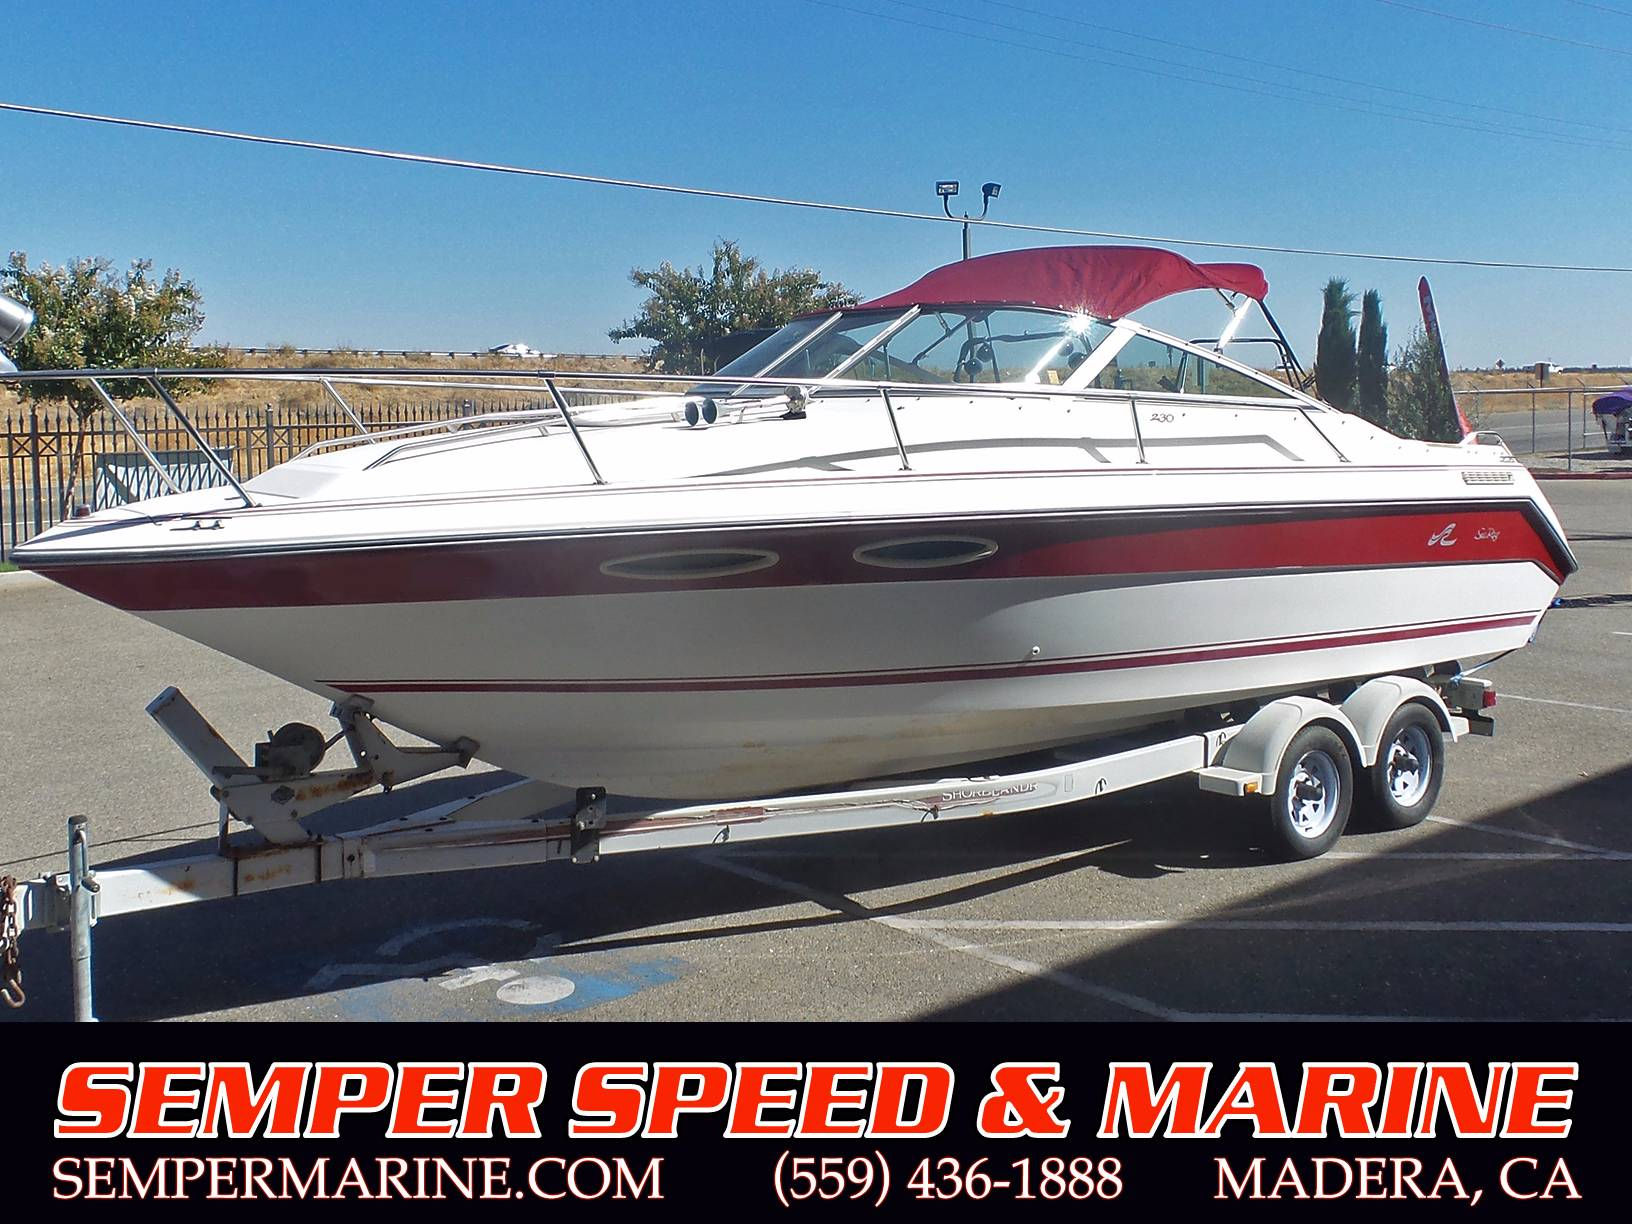 1989 Sea Ray 230 in Madera, California